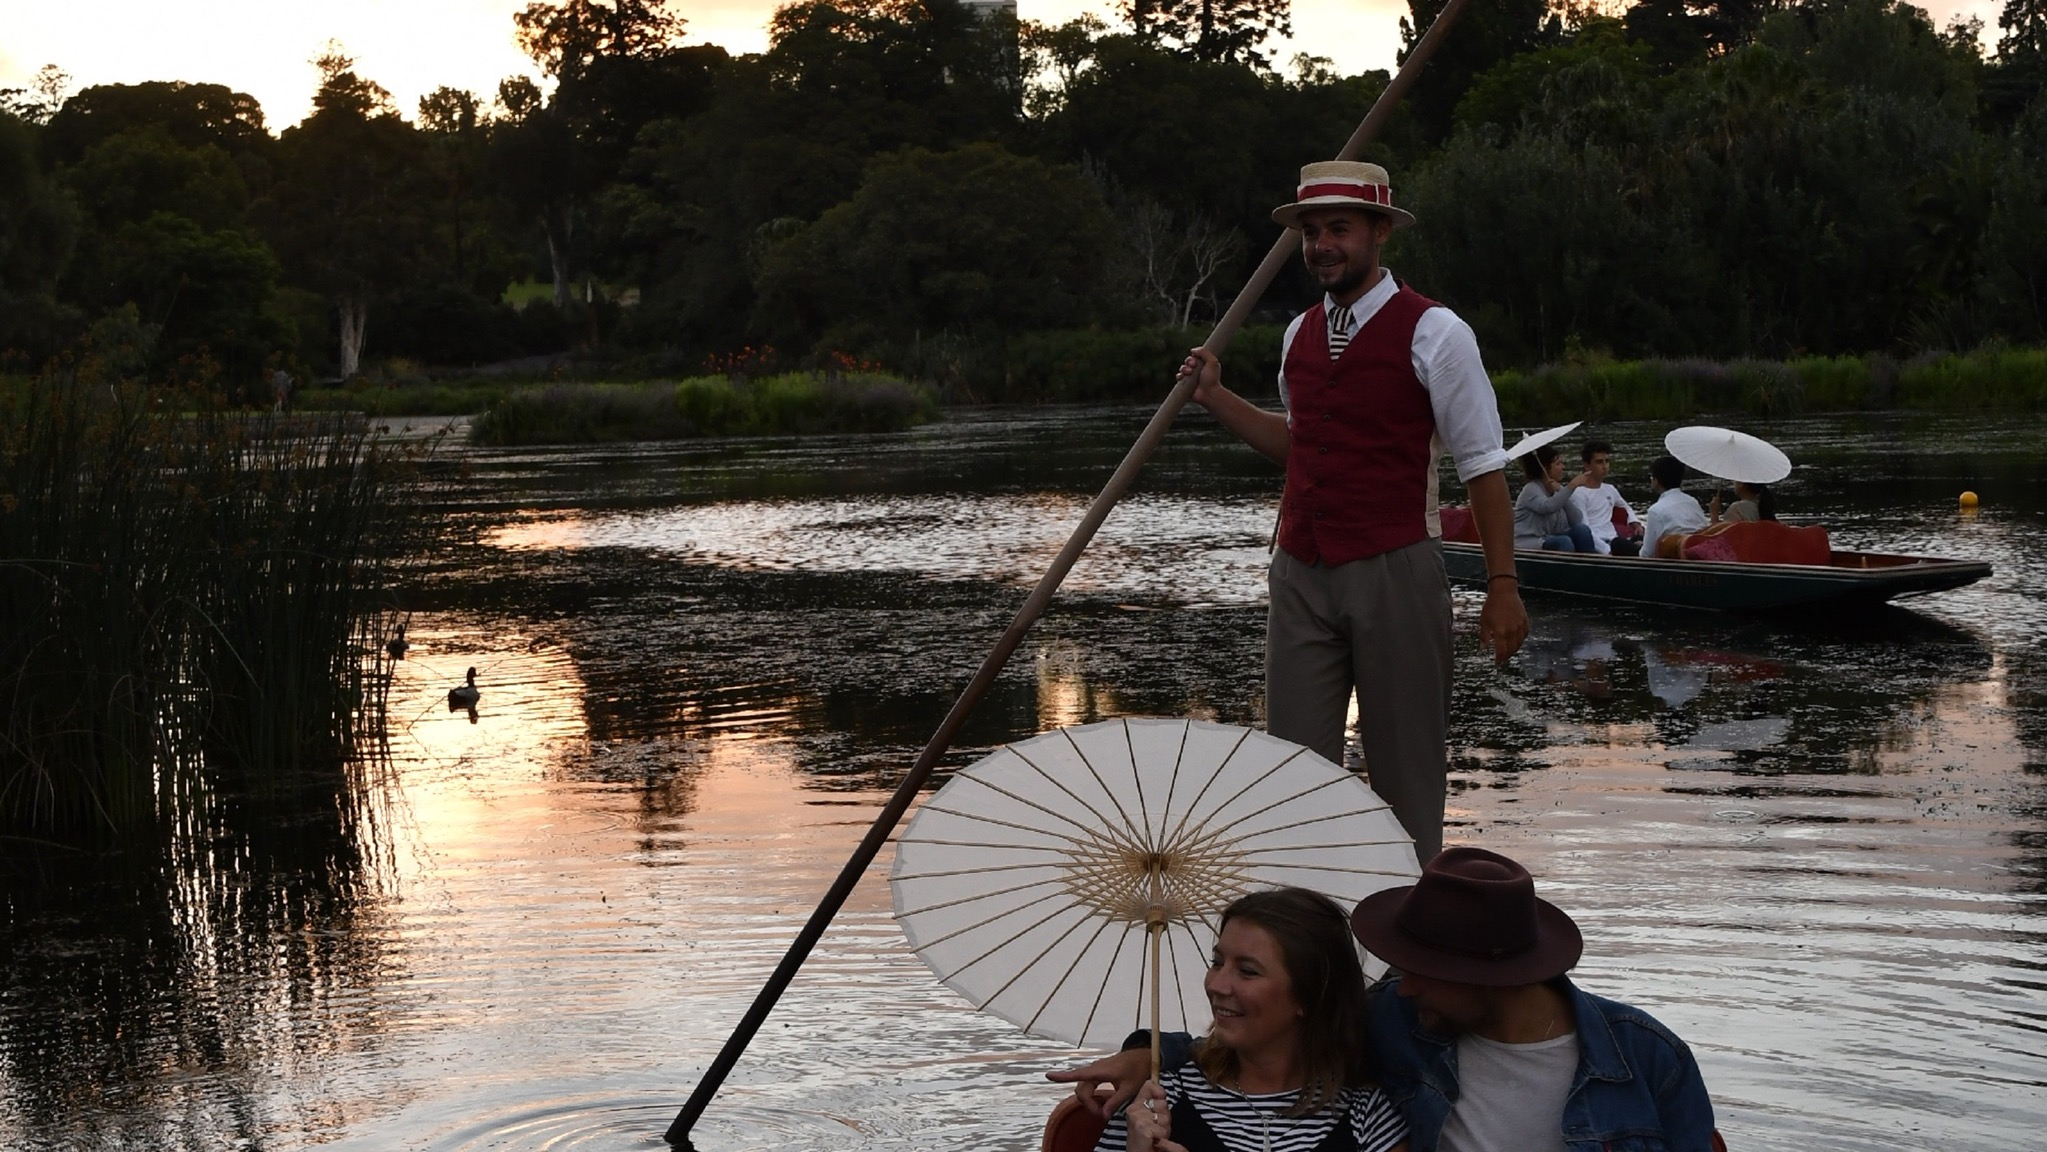 Things-to-do-in-Melbourne sunset punting